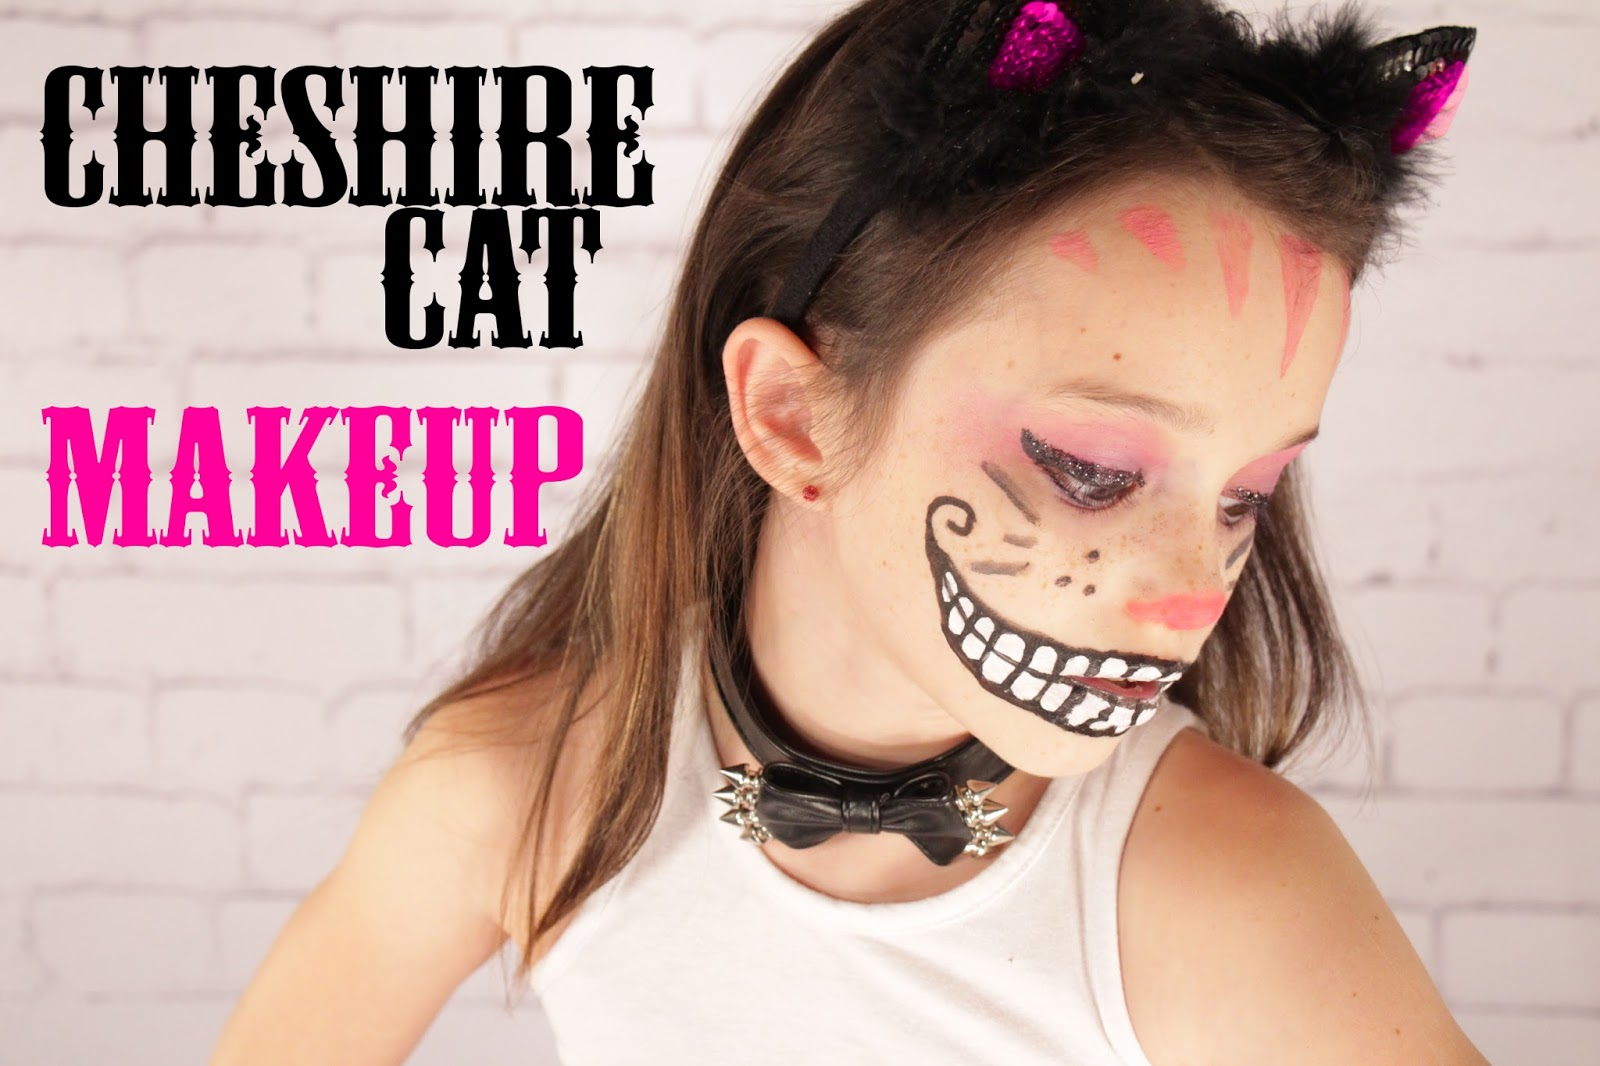 Grosgrain Cheshire Cat Face Halloween Makeup - Cheshire-cat-makeup-tutorial-you